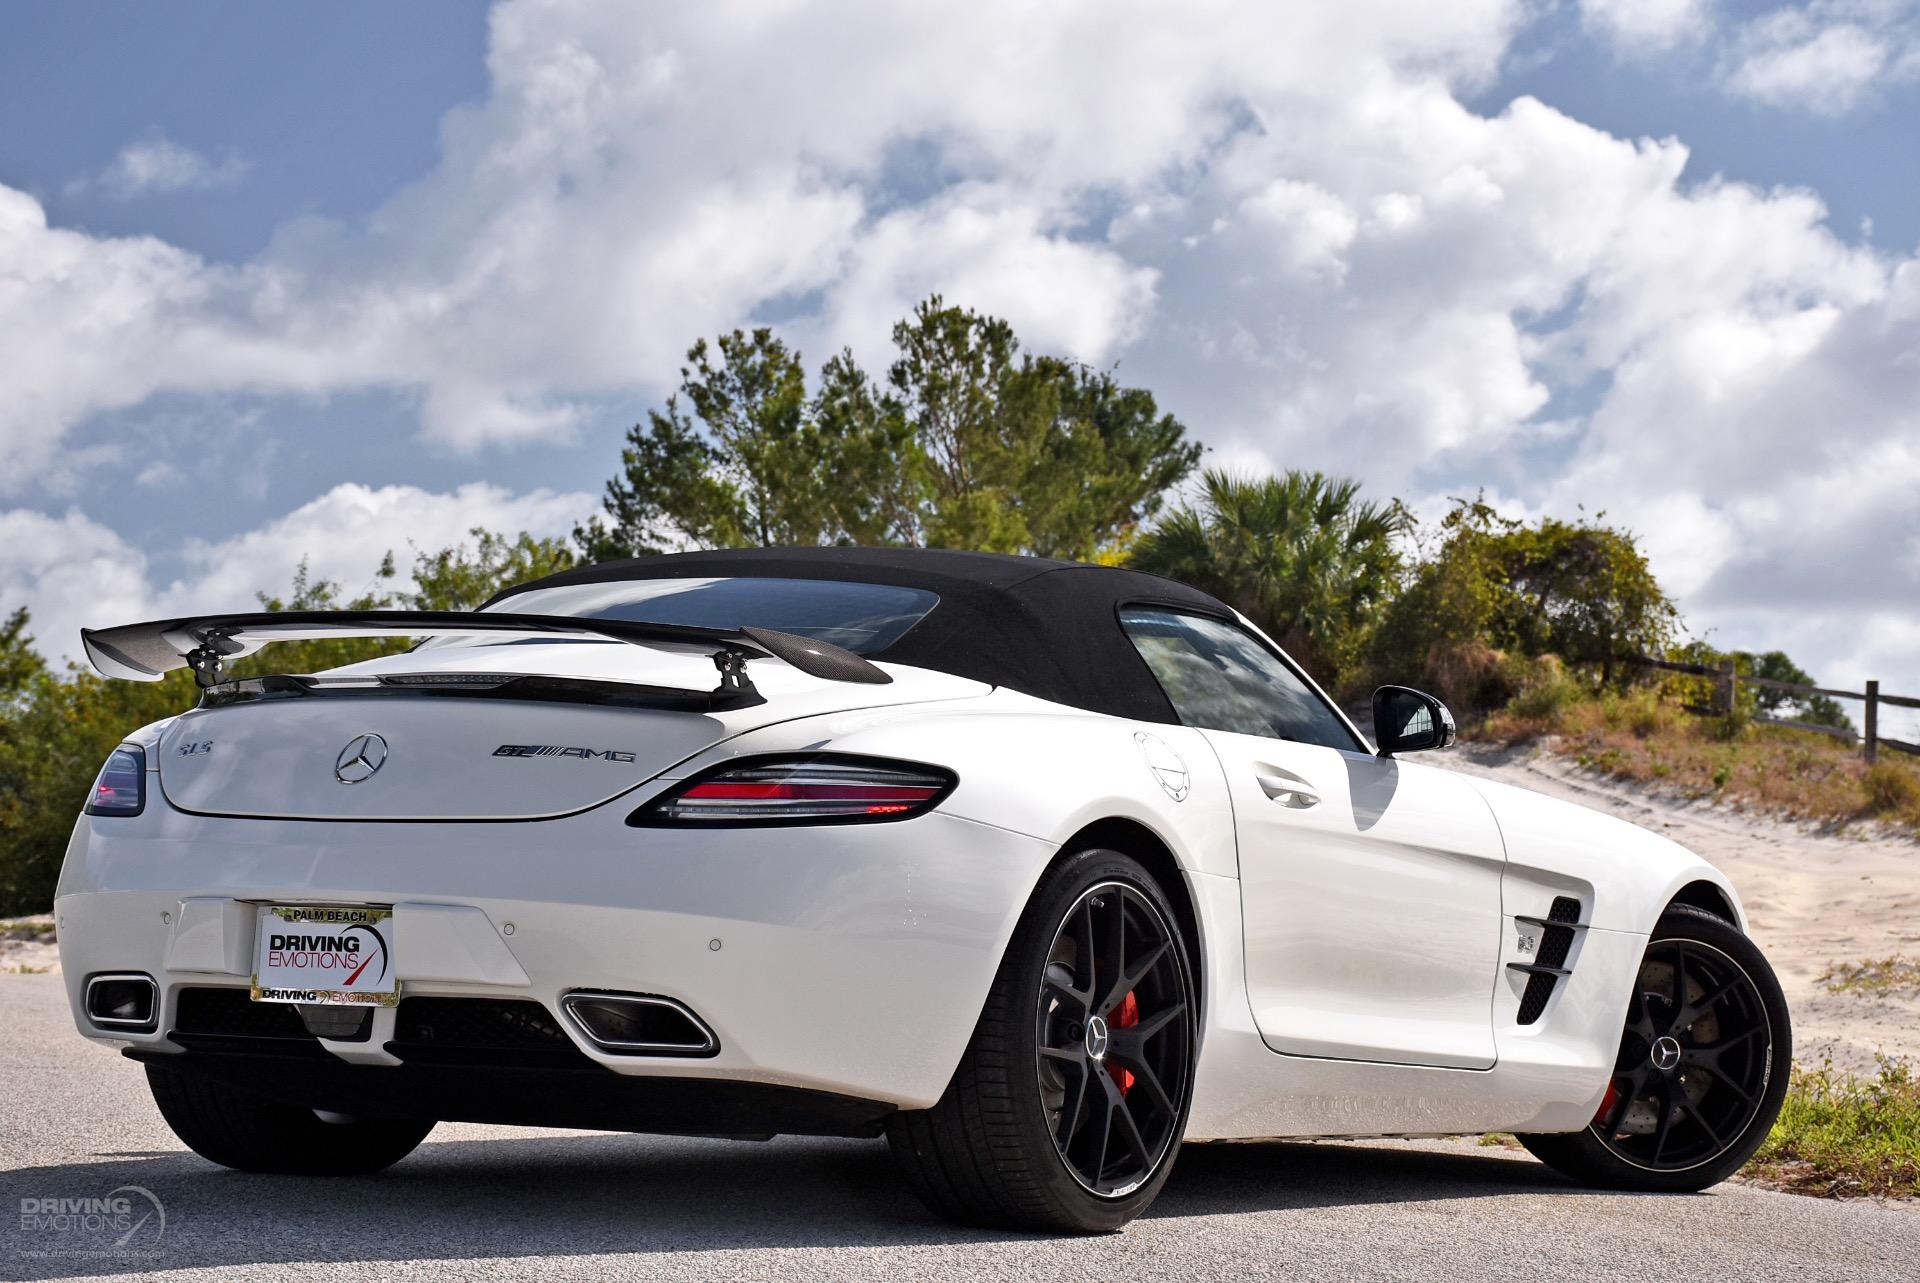 2015 mercedes benz sls amg gt roadster final edition gt final edition stock 5924 for sale near. Black Bedroom Furniture Sets. Home Design Ideas